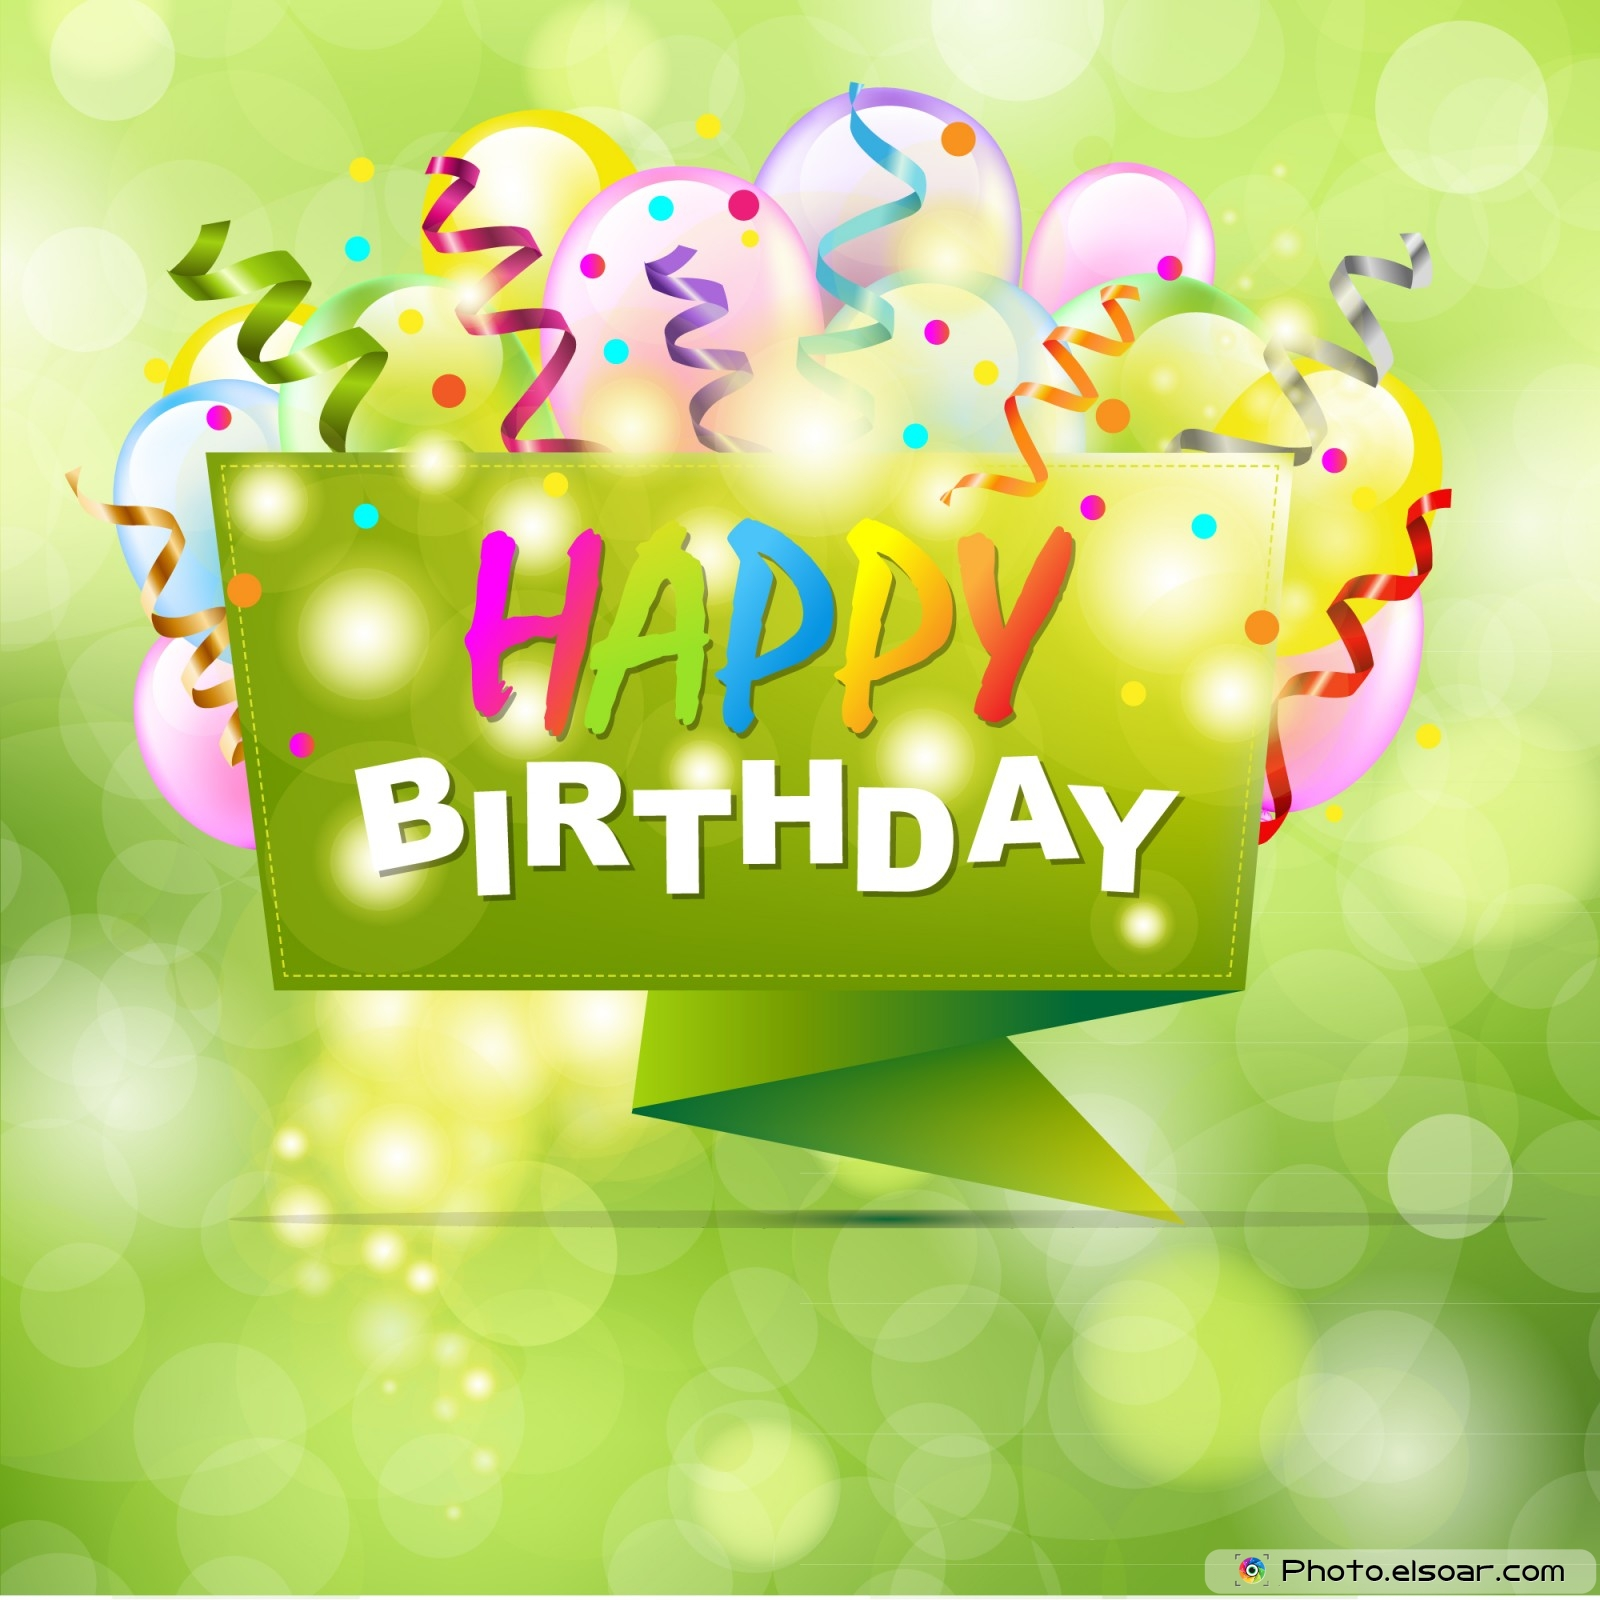 22 Happy BirthDay Cards on Bright Backgrounds Elsoar 1600x1600